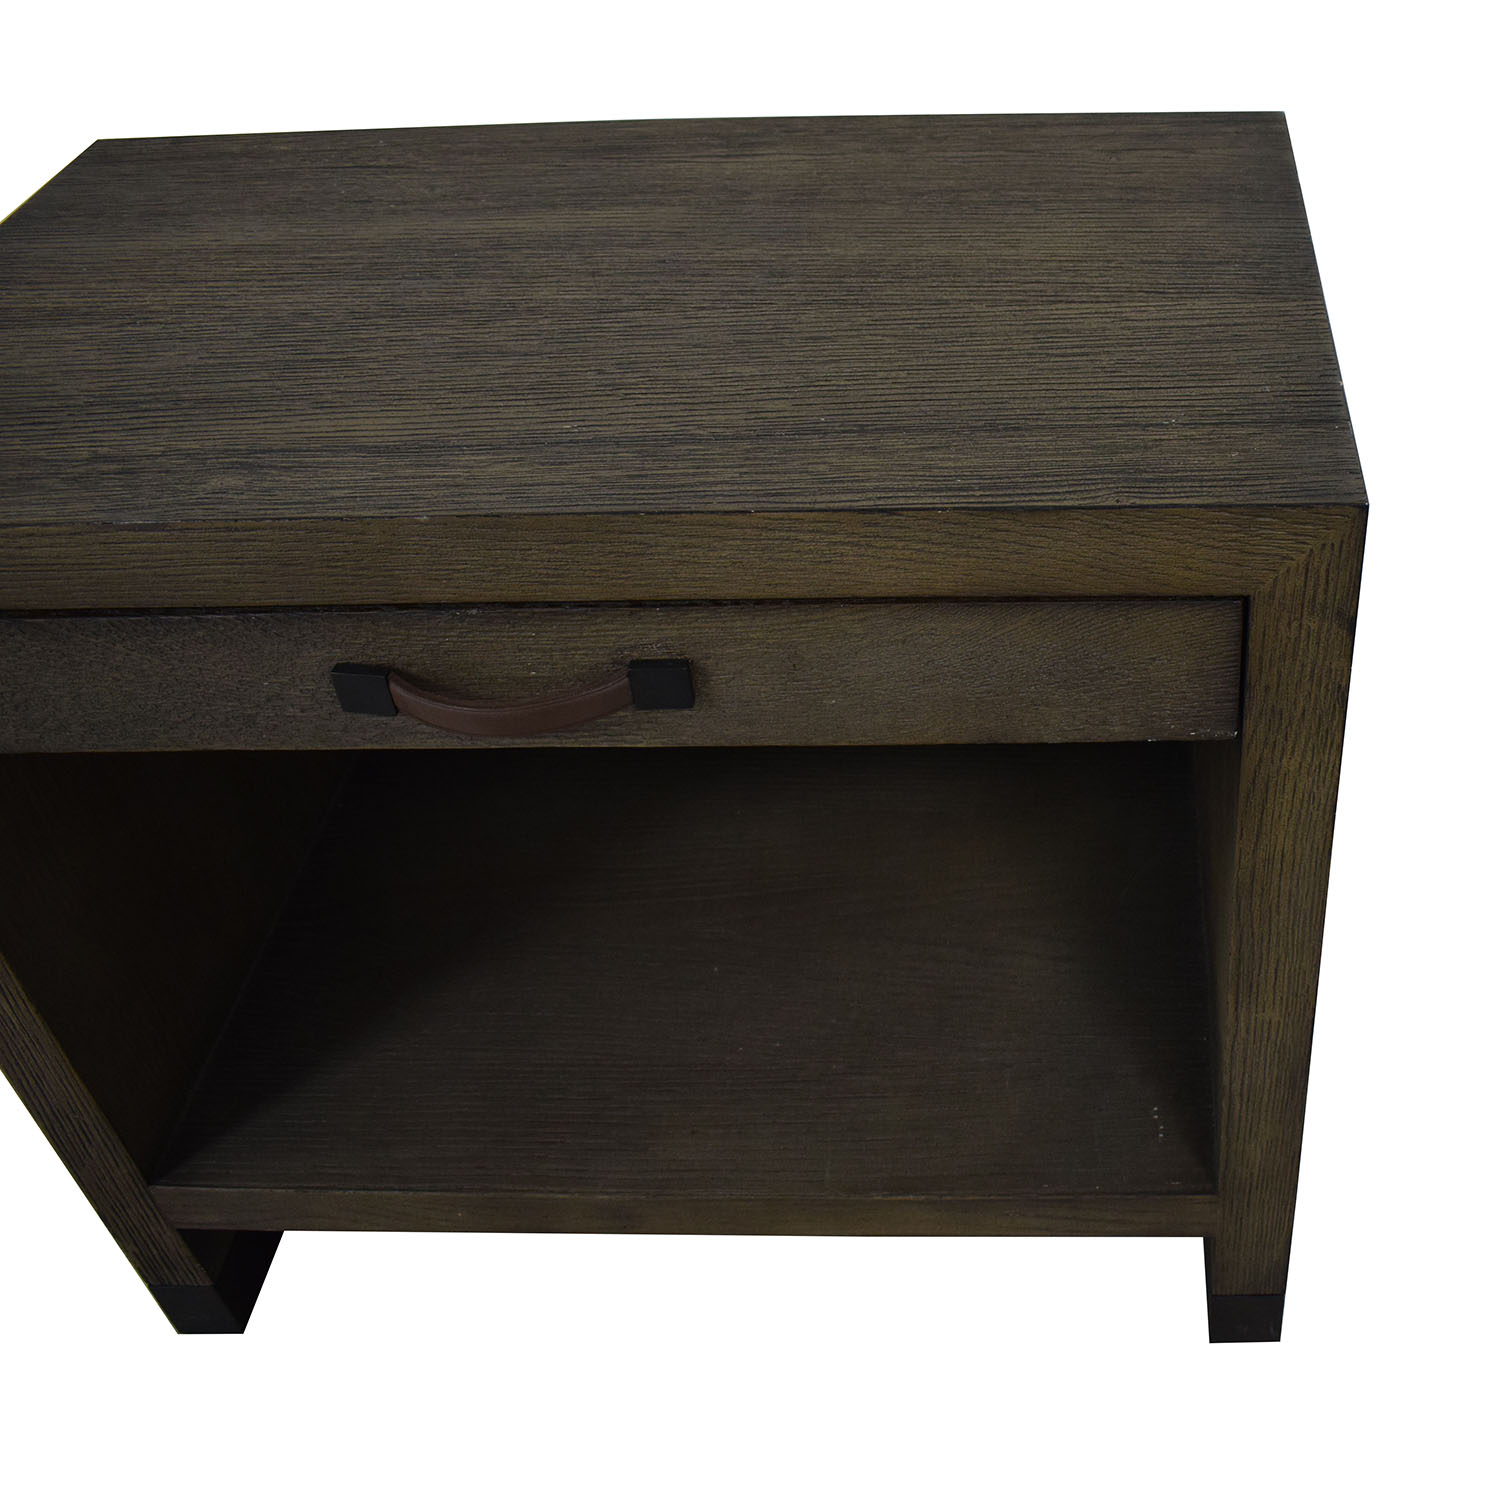 Lillian August Lillian August For Hickory White Conner Grey Nightstand dimensions